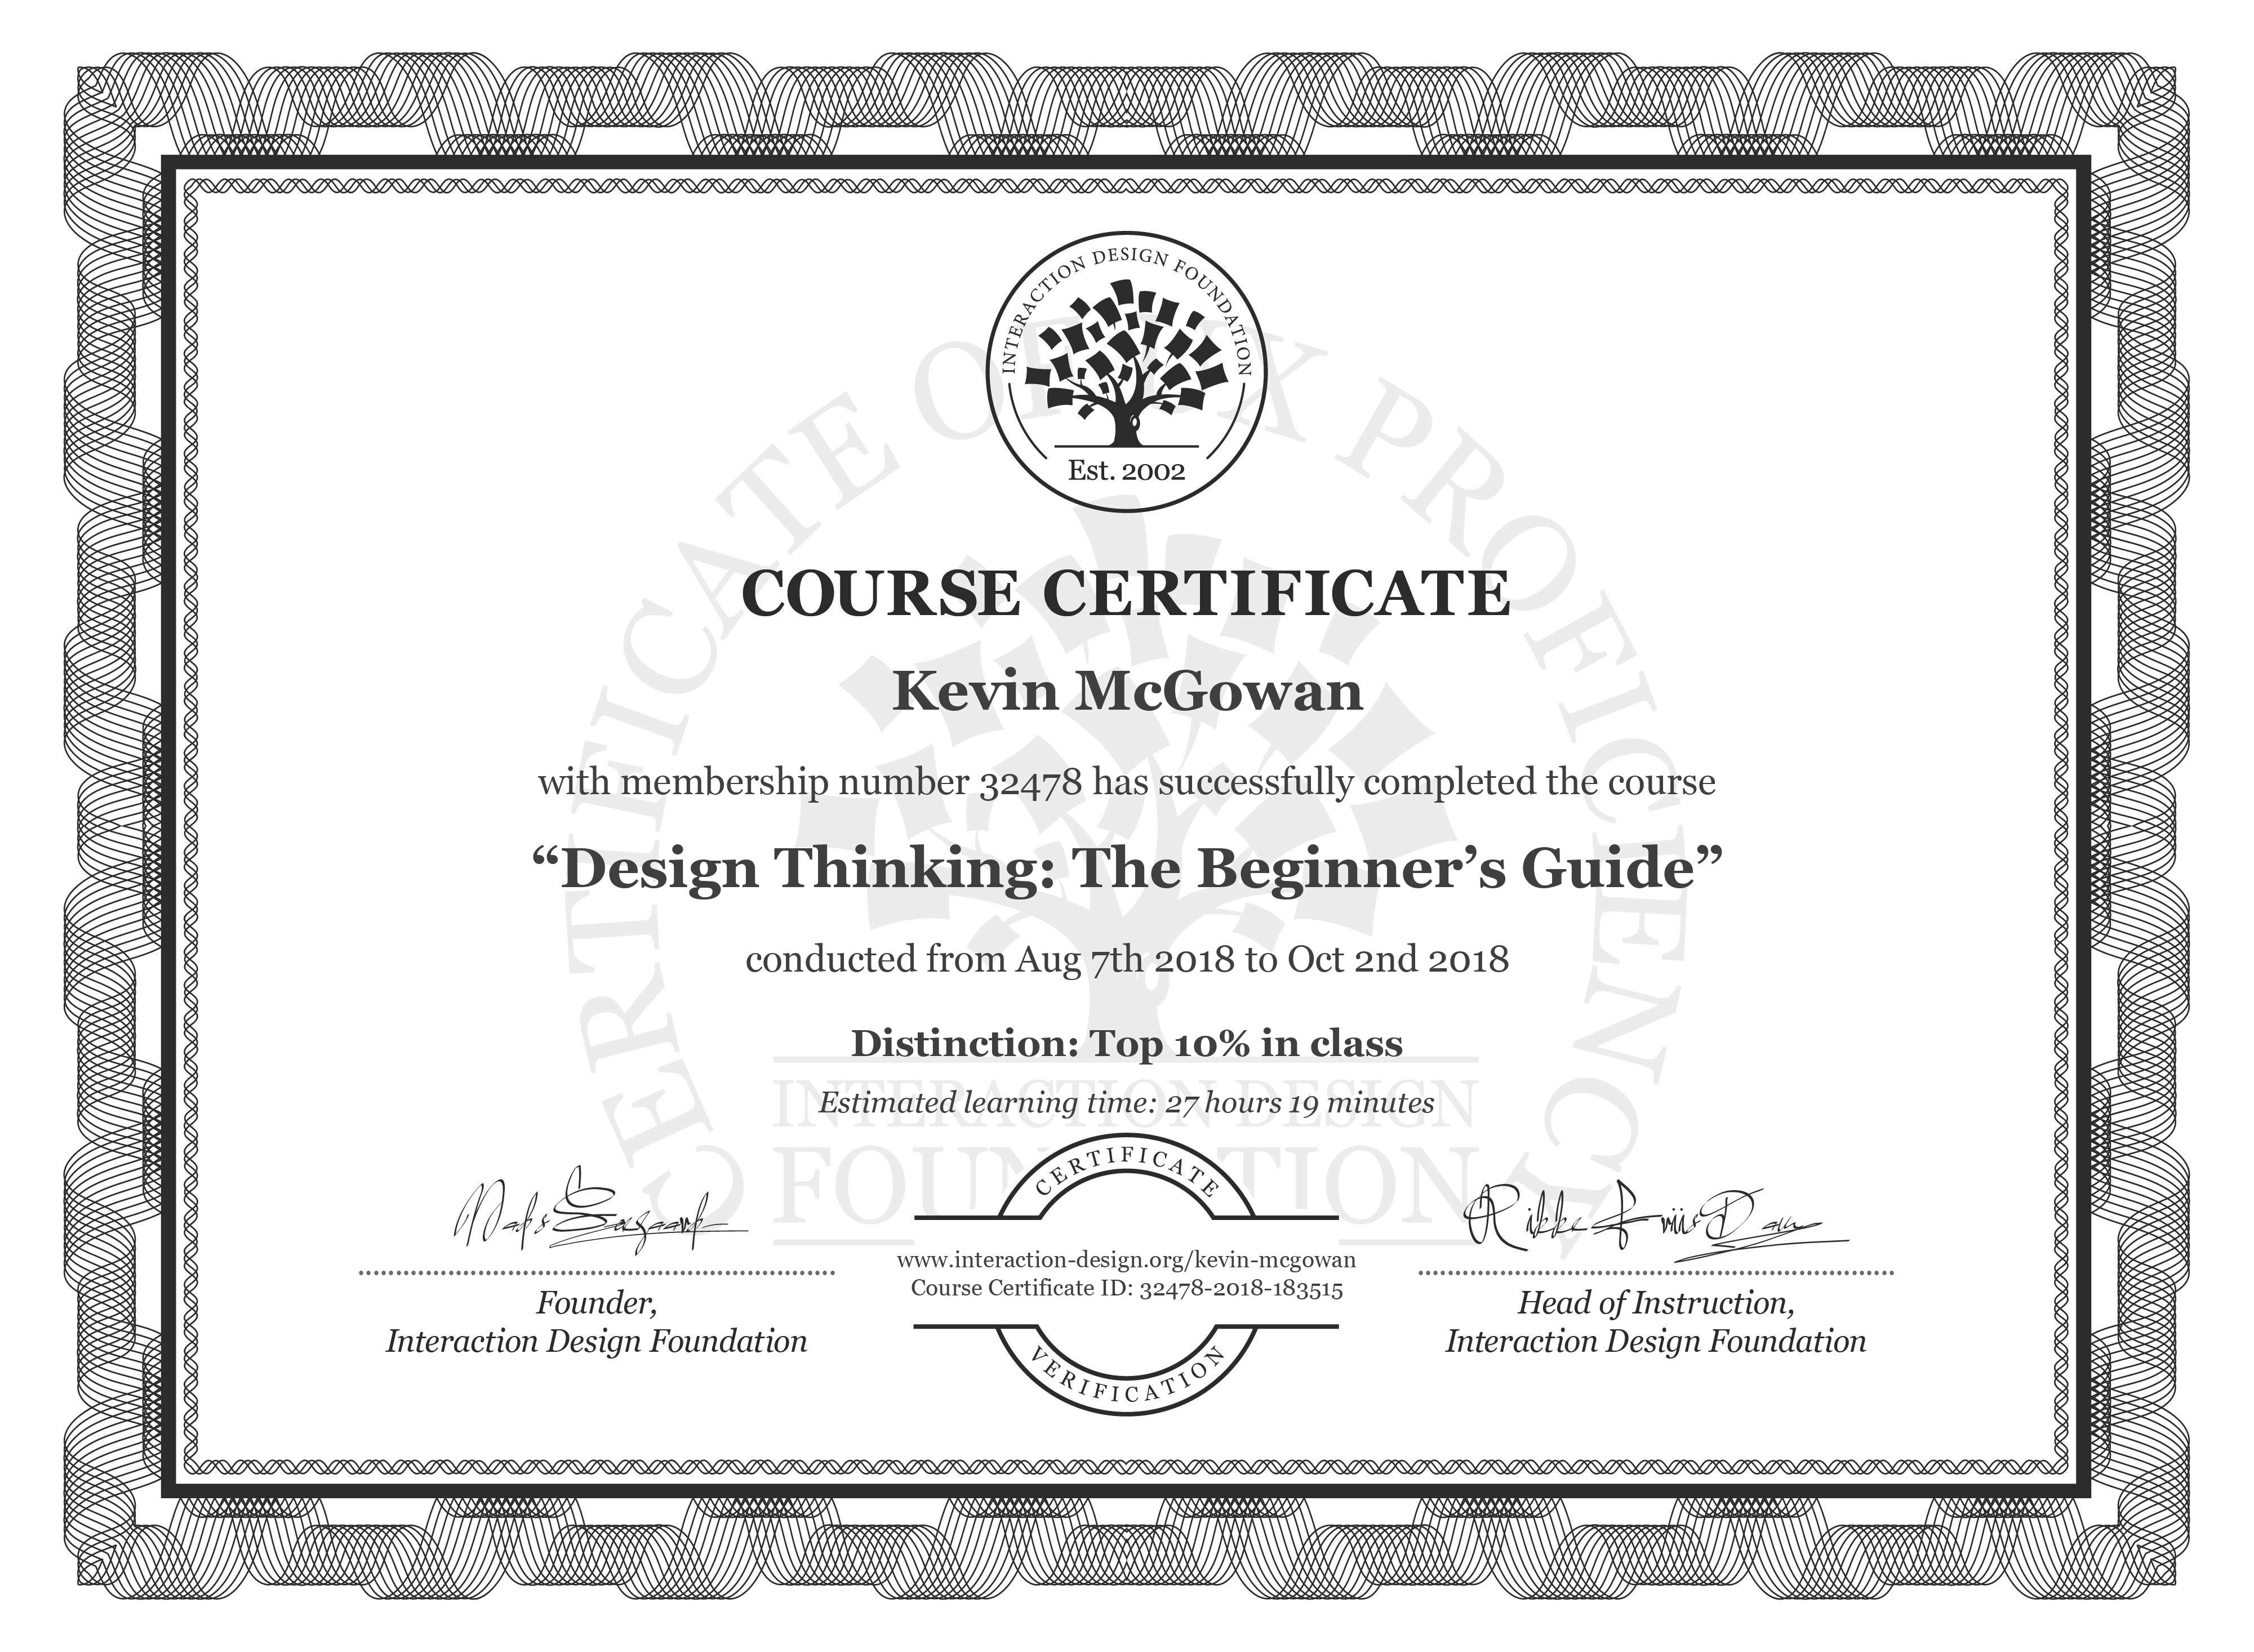 Kevin McGowan: Course Certificate - Design Thinking: The Beginner's Guide